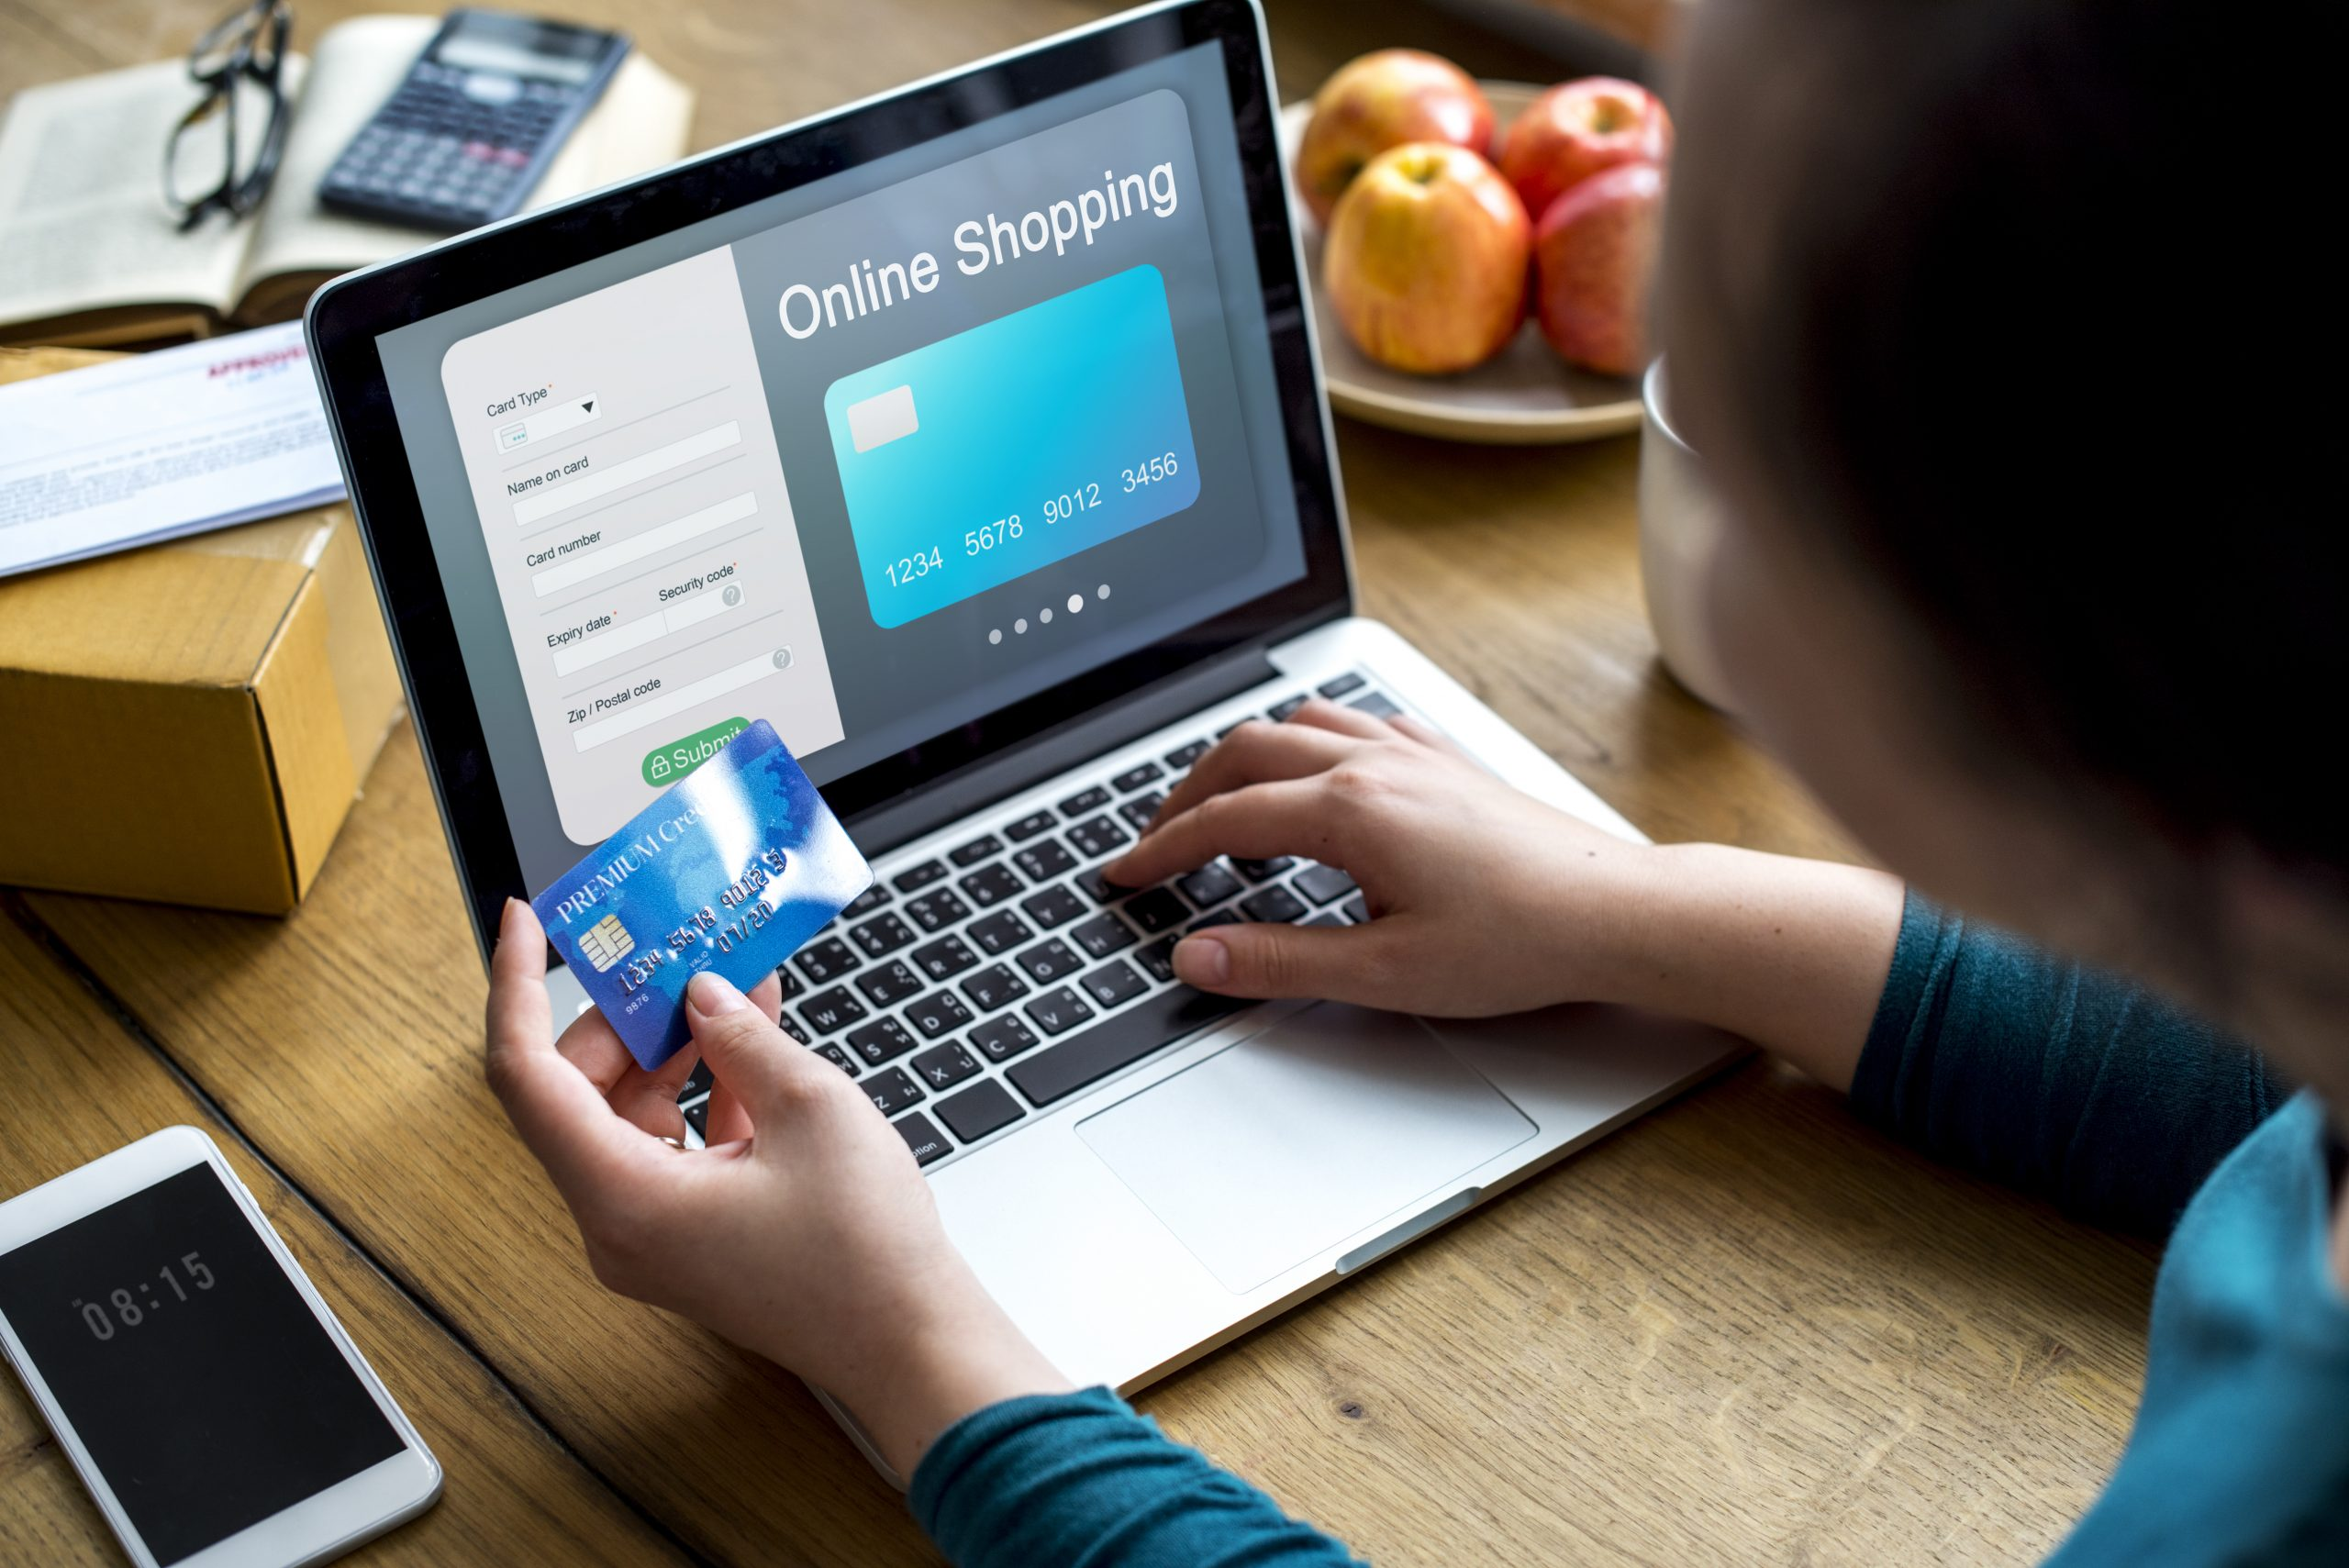 Hand holding credit card next to laptop displaying online store